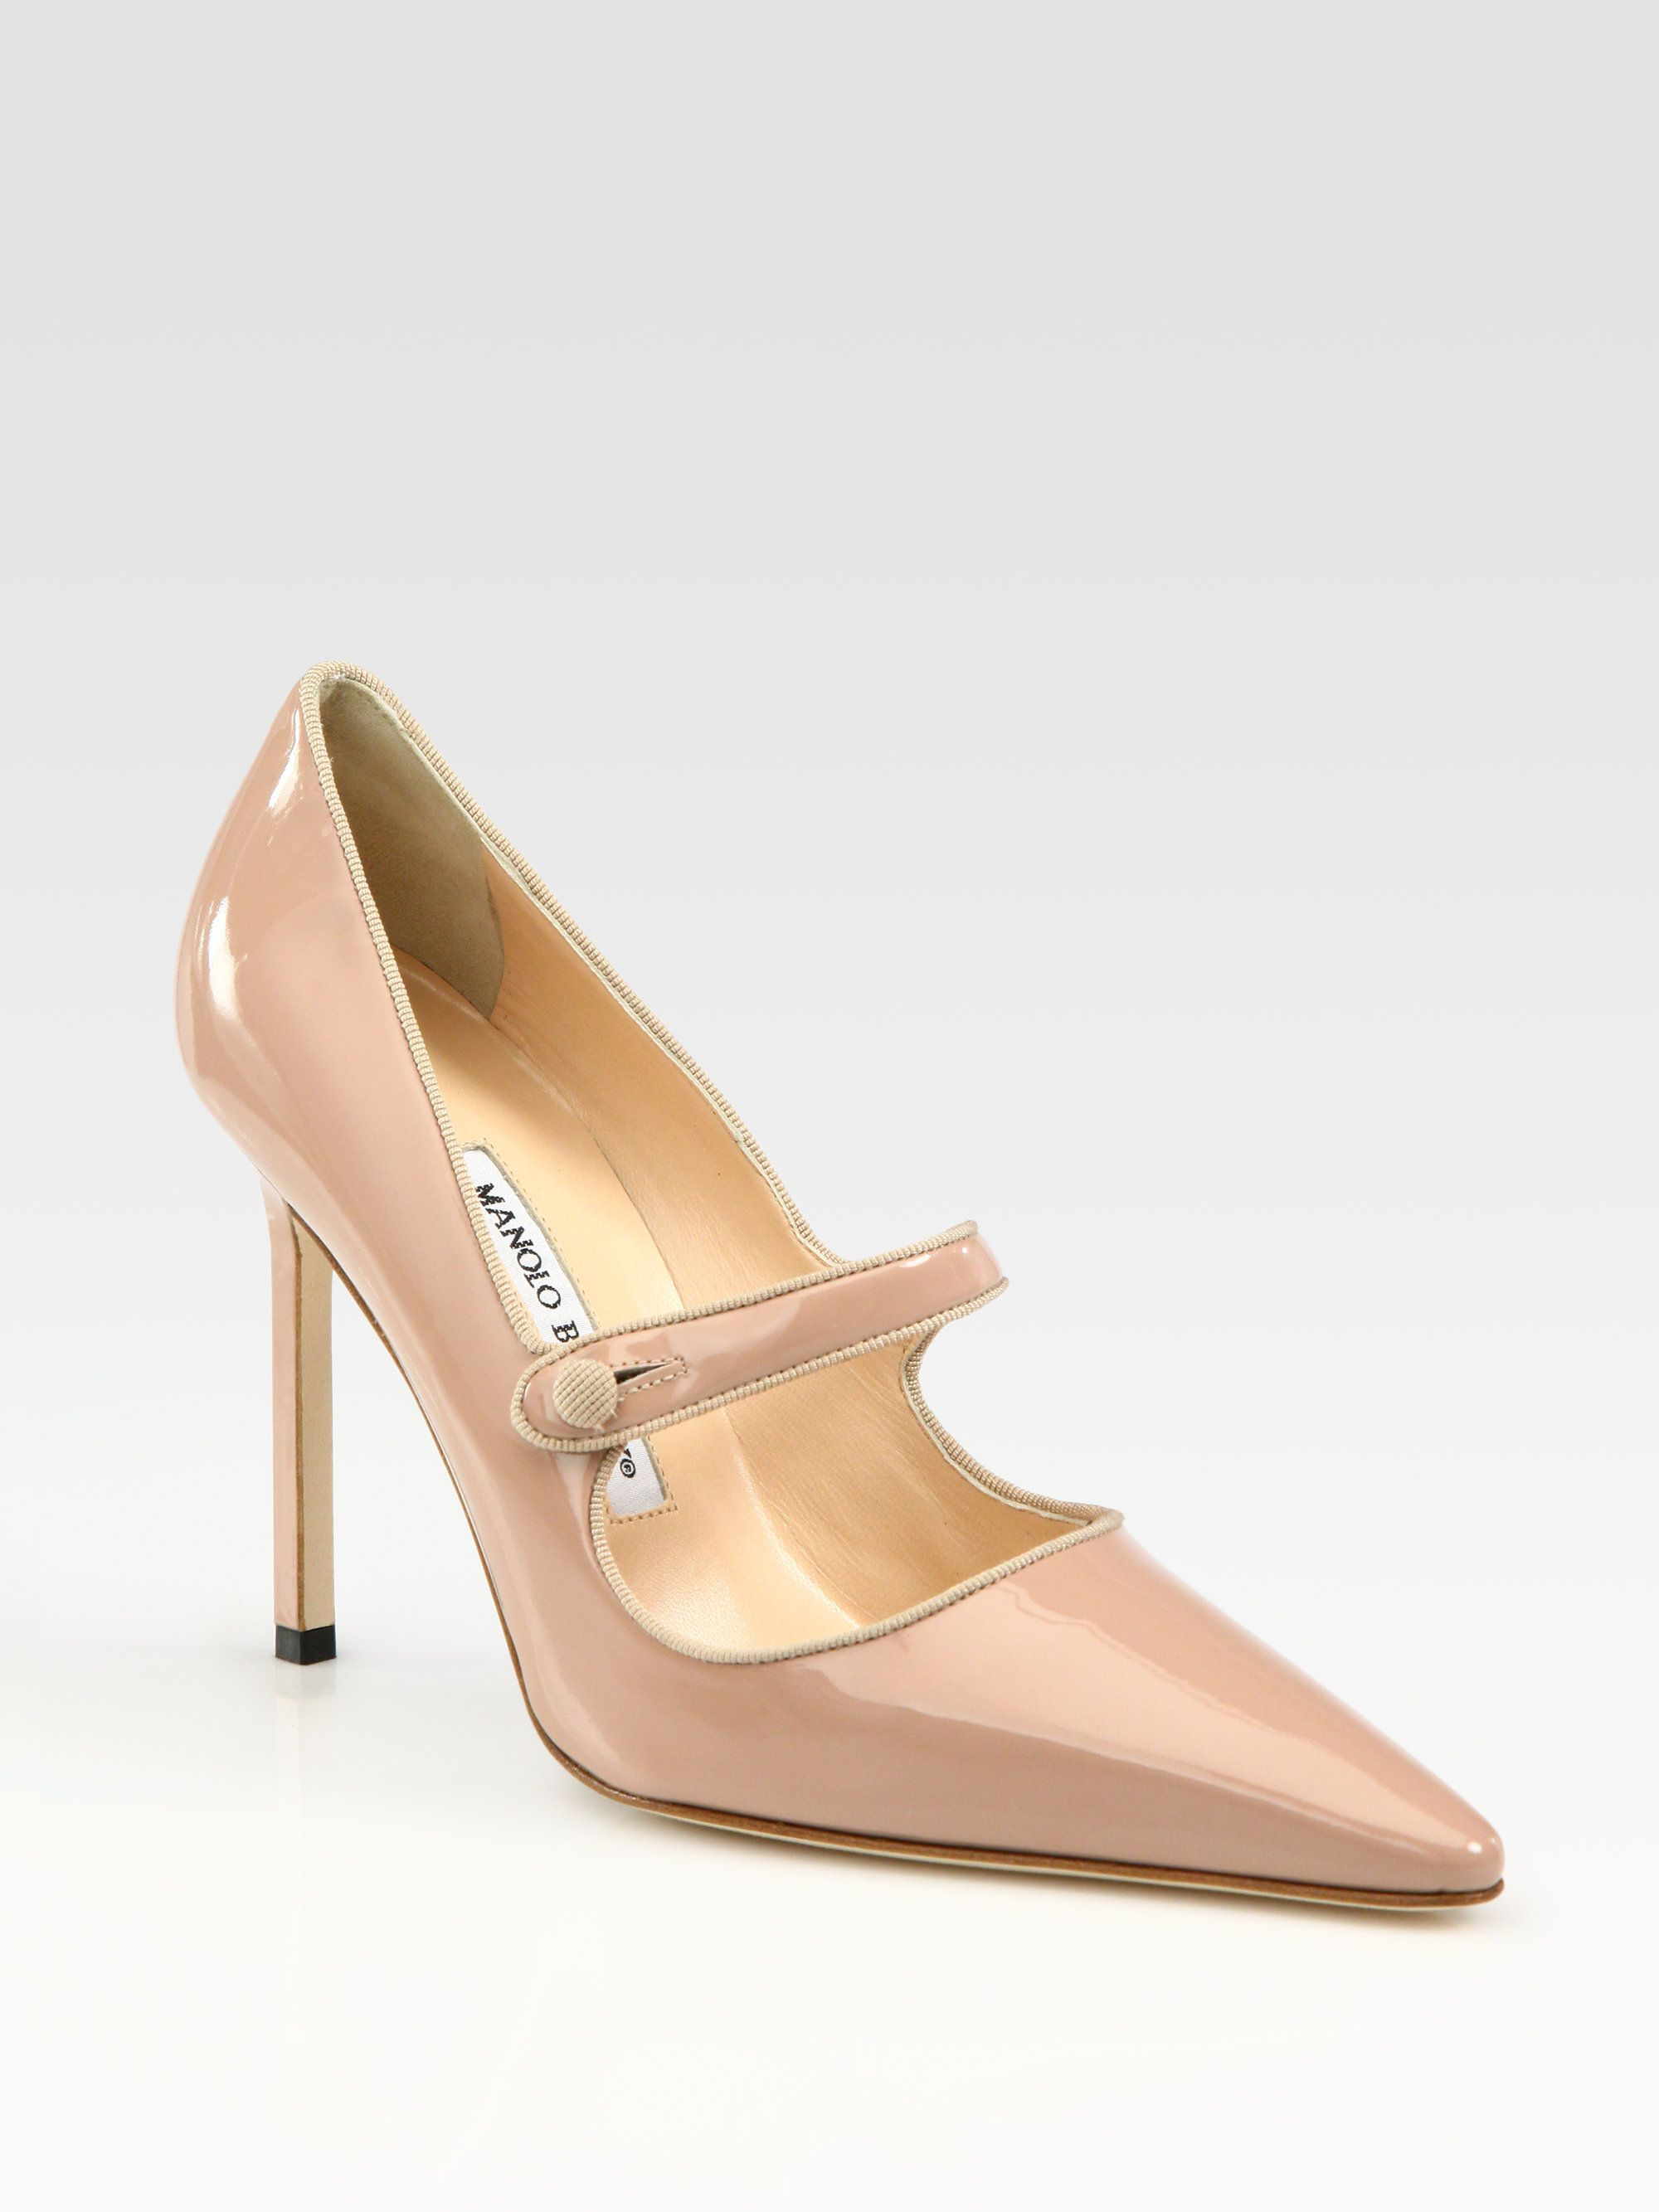 f9f1219b72 Manolo Blahnik Campari Patent Leather Mary Jane Pumps in (nude ...